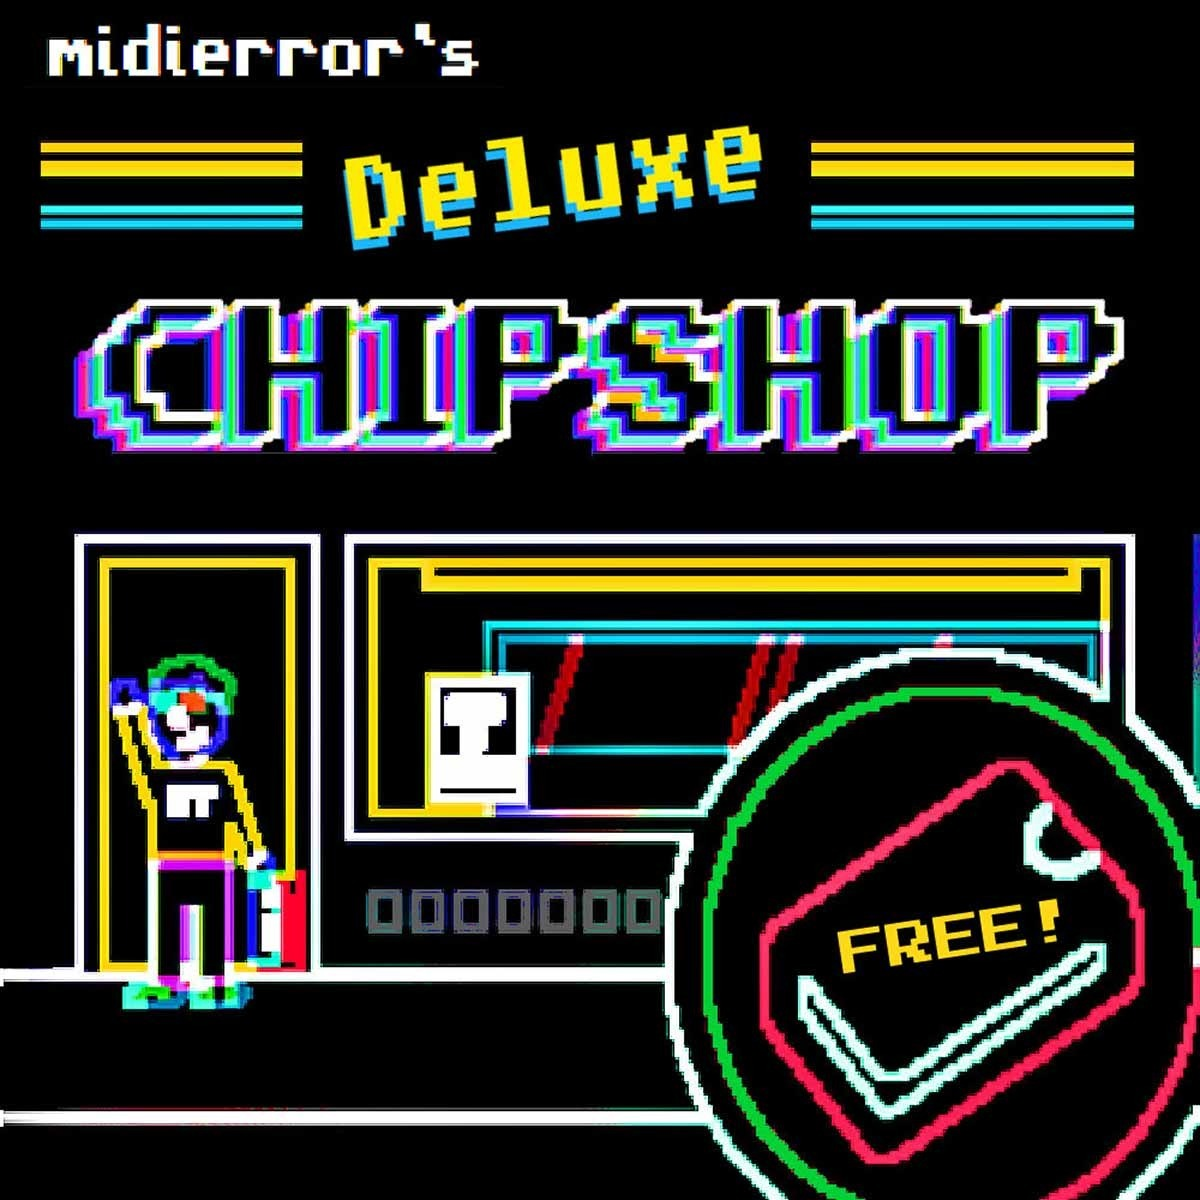 Midi Error Gives Away Over 1000 Chiptune Style Samples To Everyone!